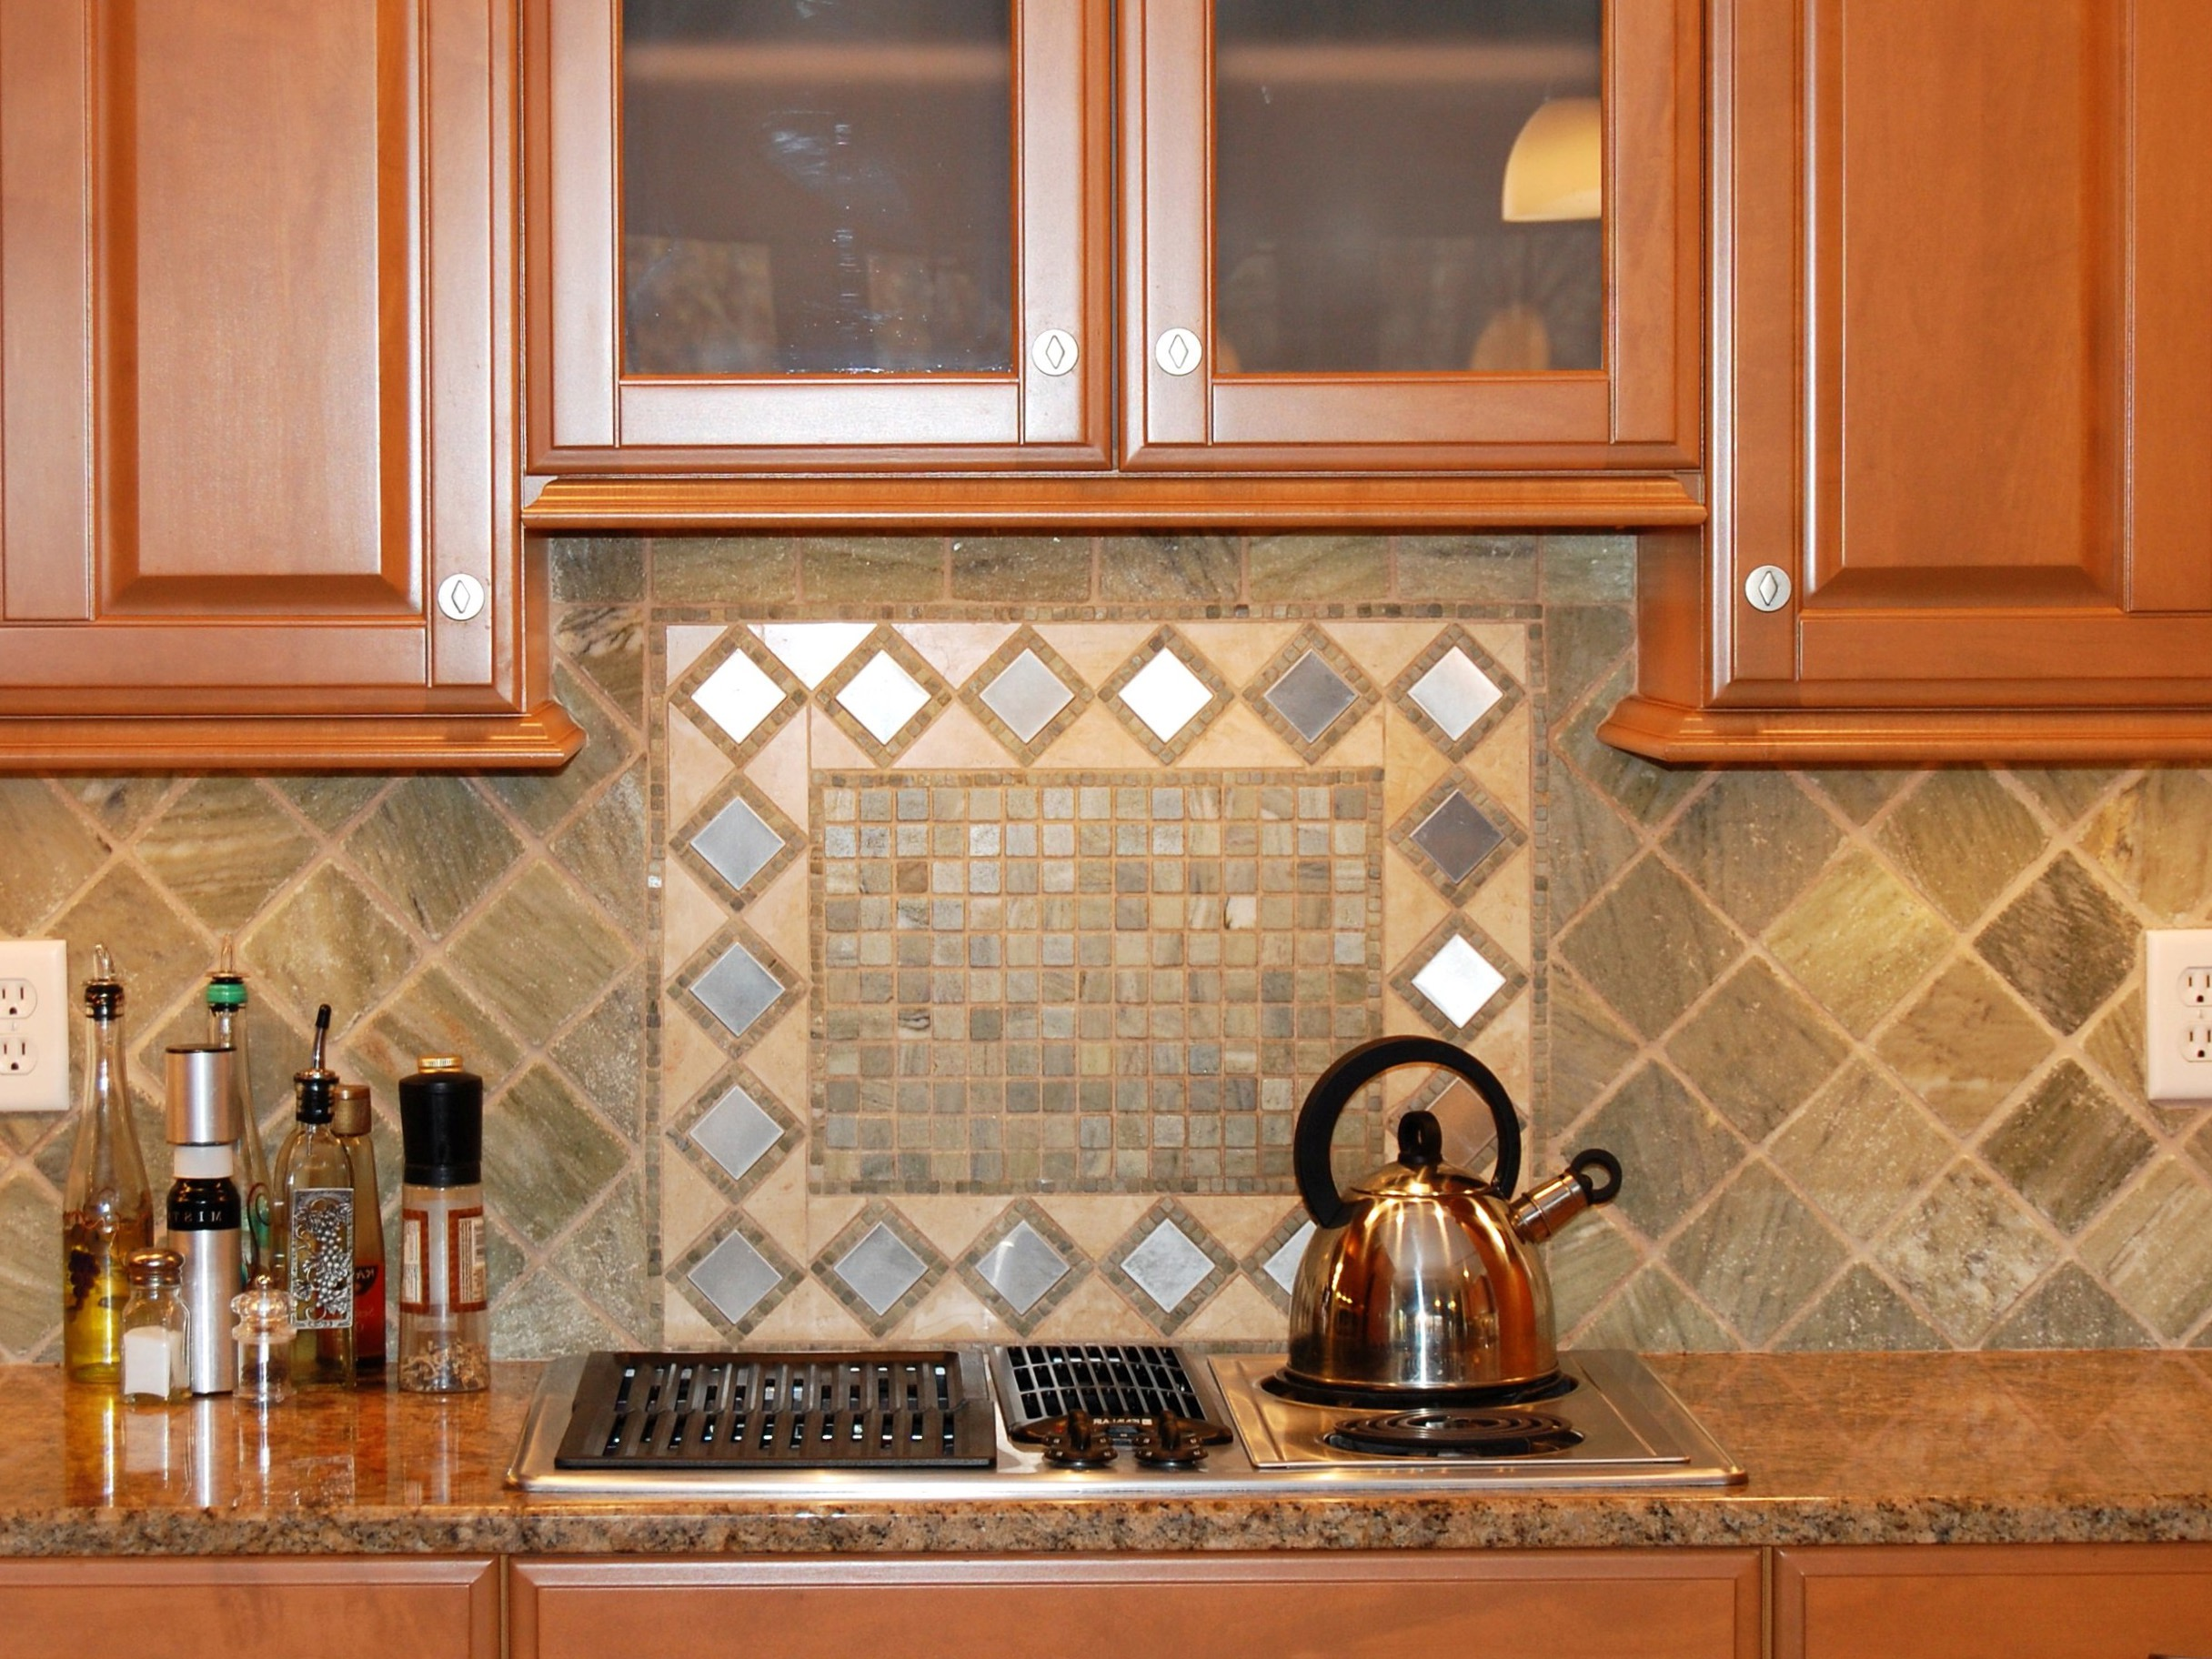 Kitchen Backsplash From Diamond Shaped Stainless Steel Accent Tiles (Image 14 of 32)